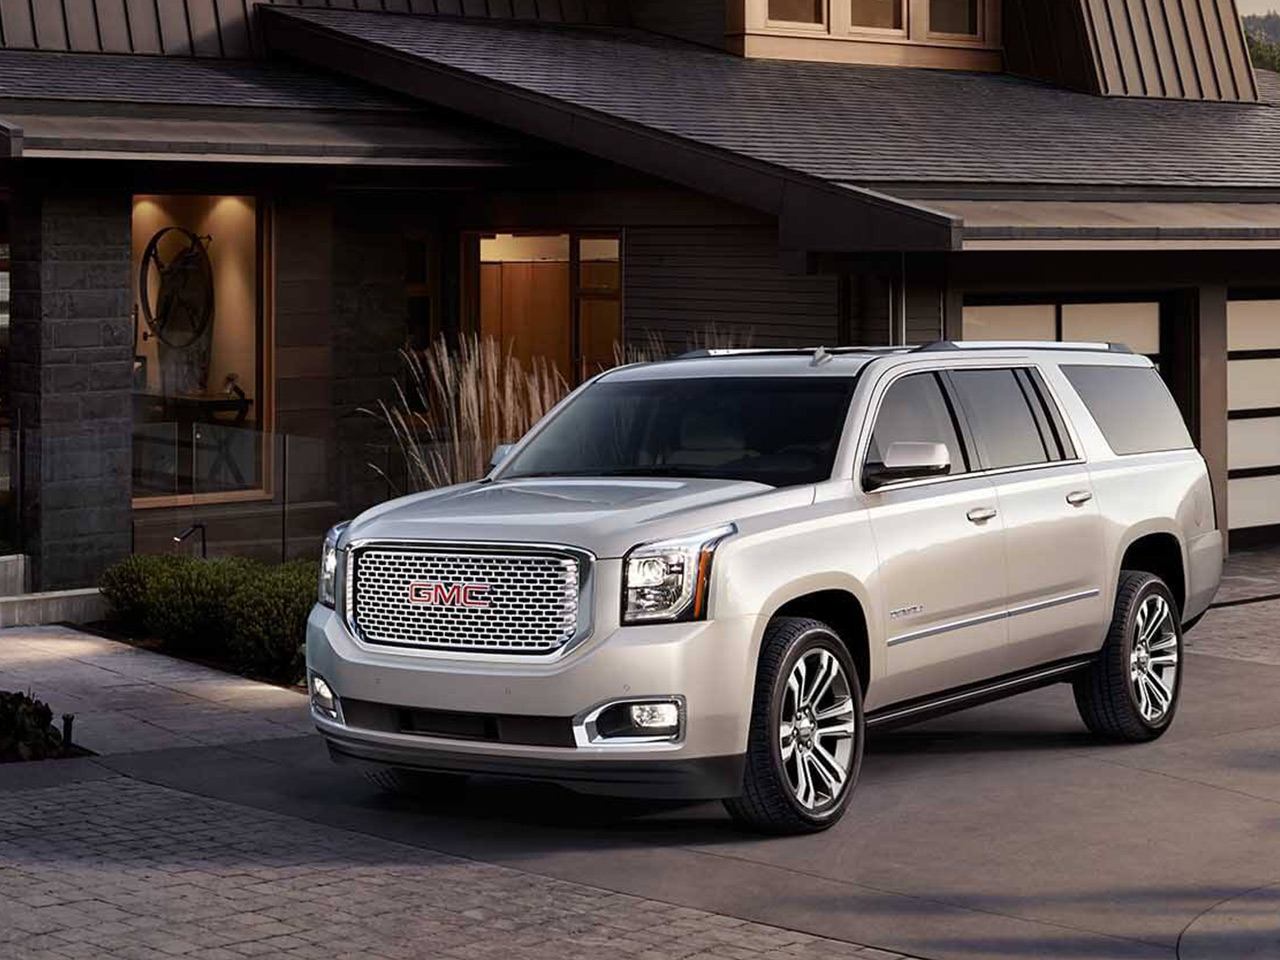 2017 gmc yukon xl dealer in orange county hardin buick gmc. Black Bedroom Furniture Sets. Home Design Ideas